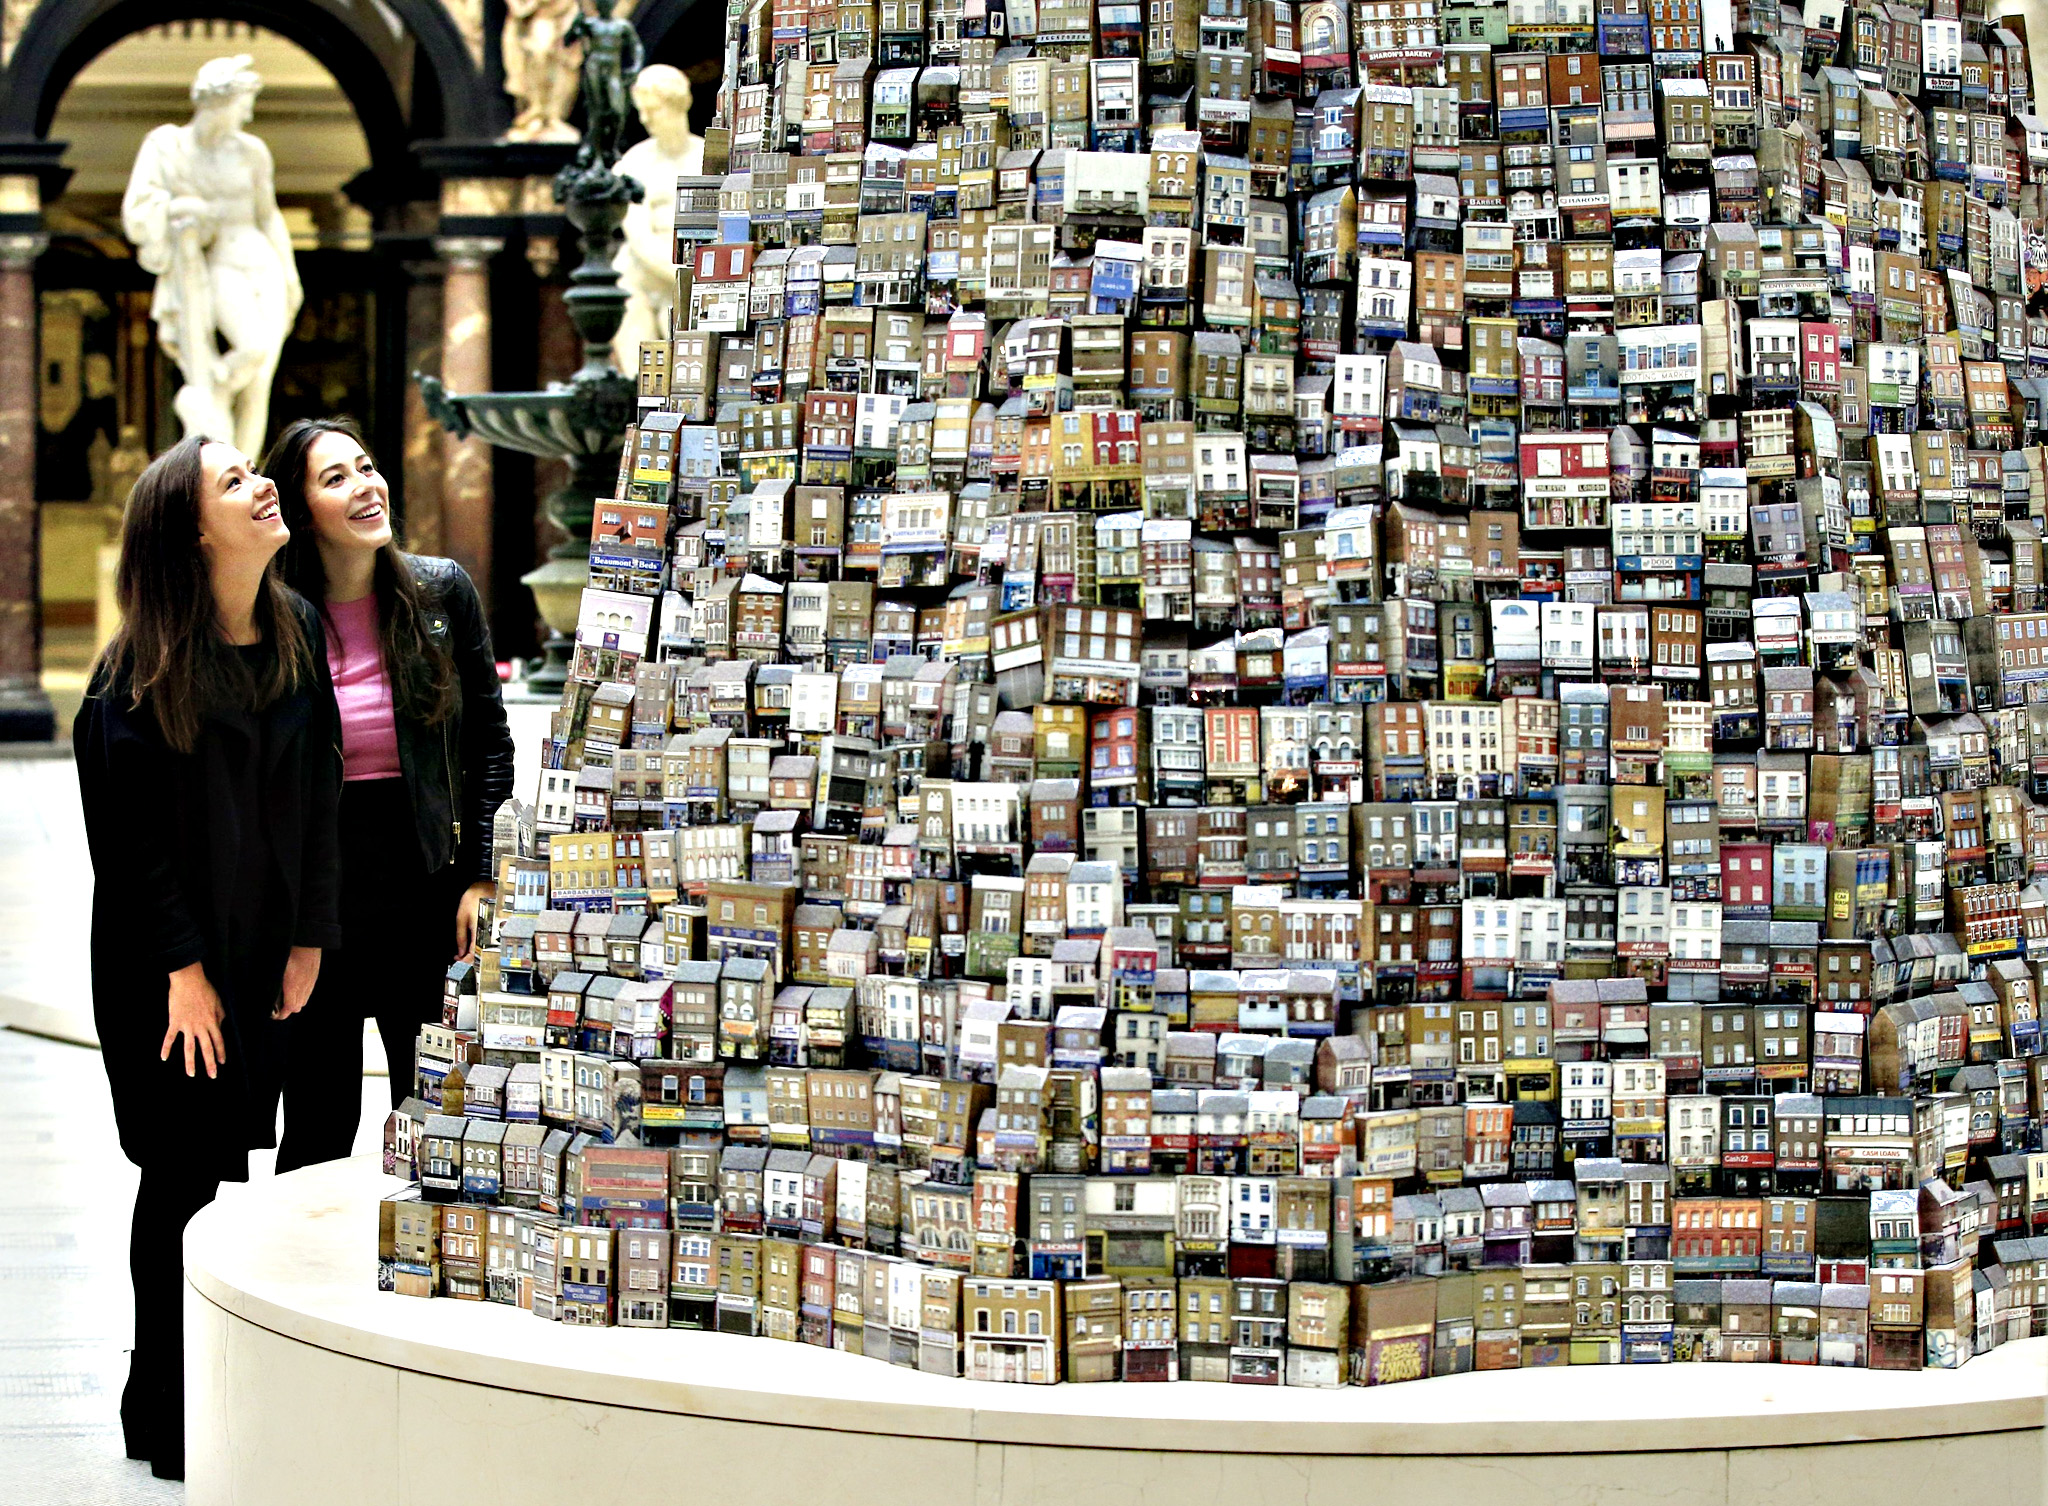 People view 'Tower of Babel' by artist Barnaby Barford, a six metre tall ceramic sculpture composed of 3,000 individual pieces depicting genuine London shop fronts displayed in the V&A Museum's Medieval land Renaissance Galleries